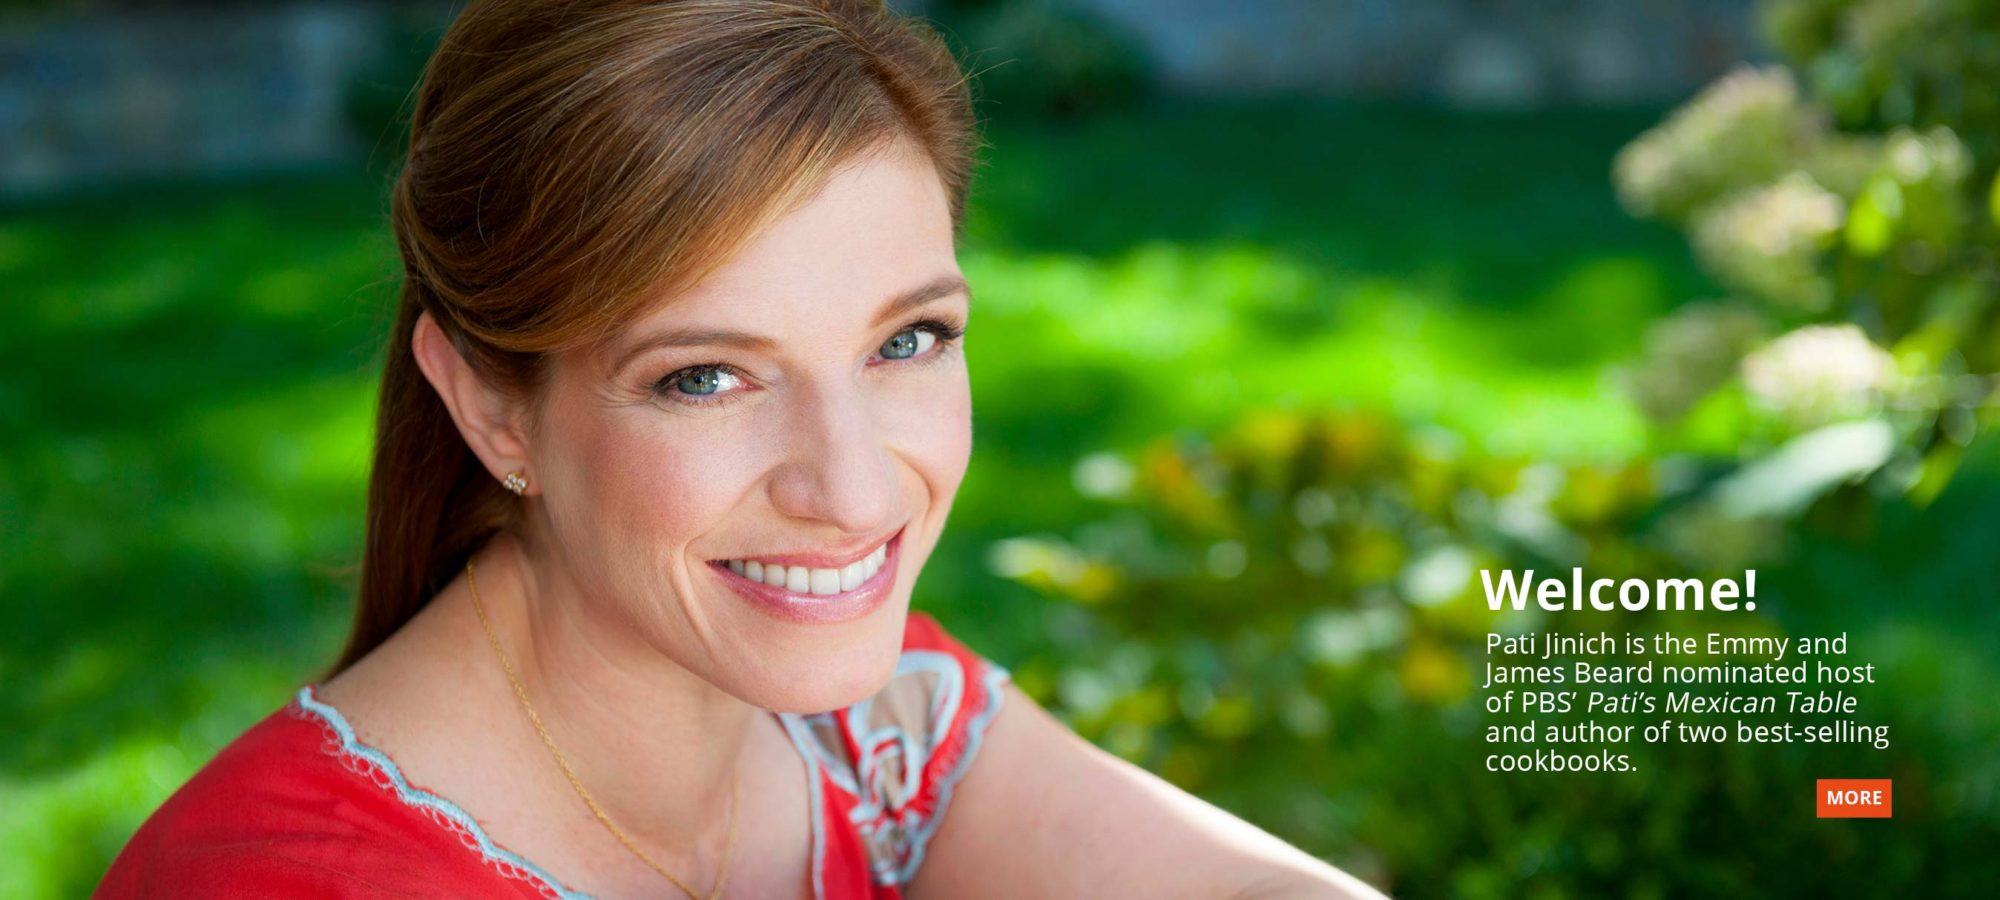 Pati Jinich is a Chef, Cookbook Author, and Host of Pati's Mexican Table